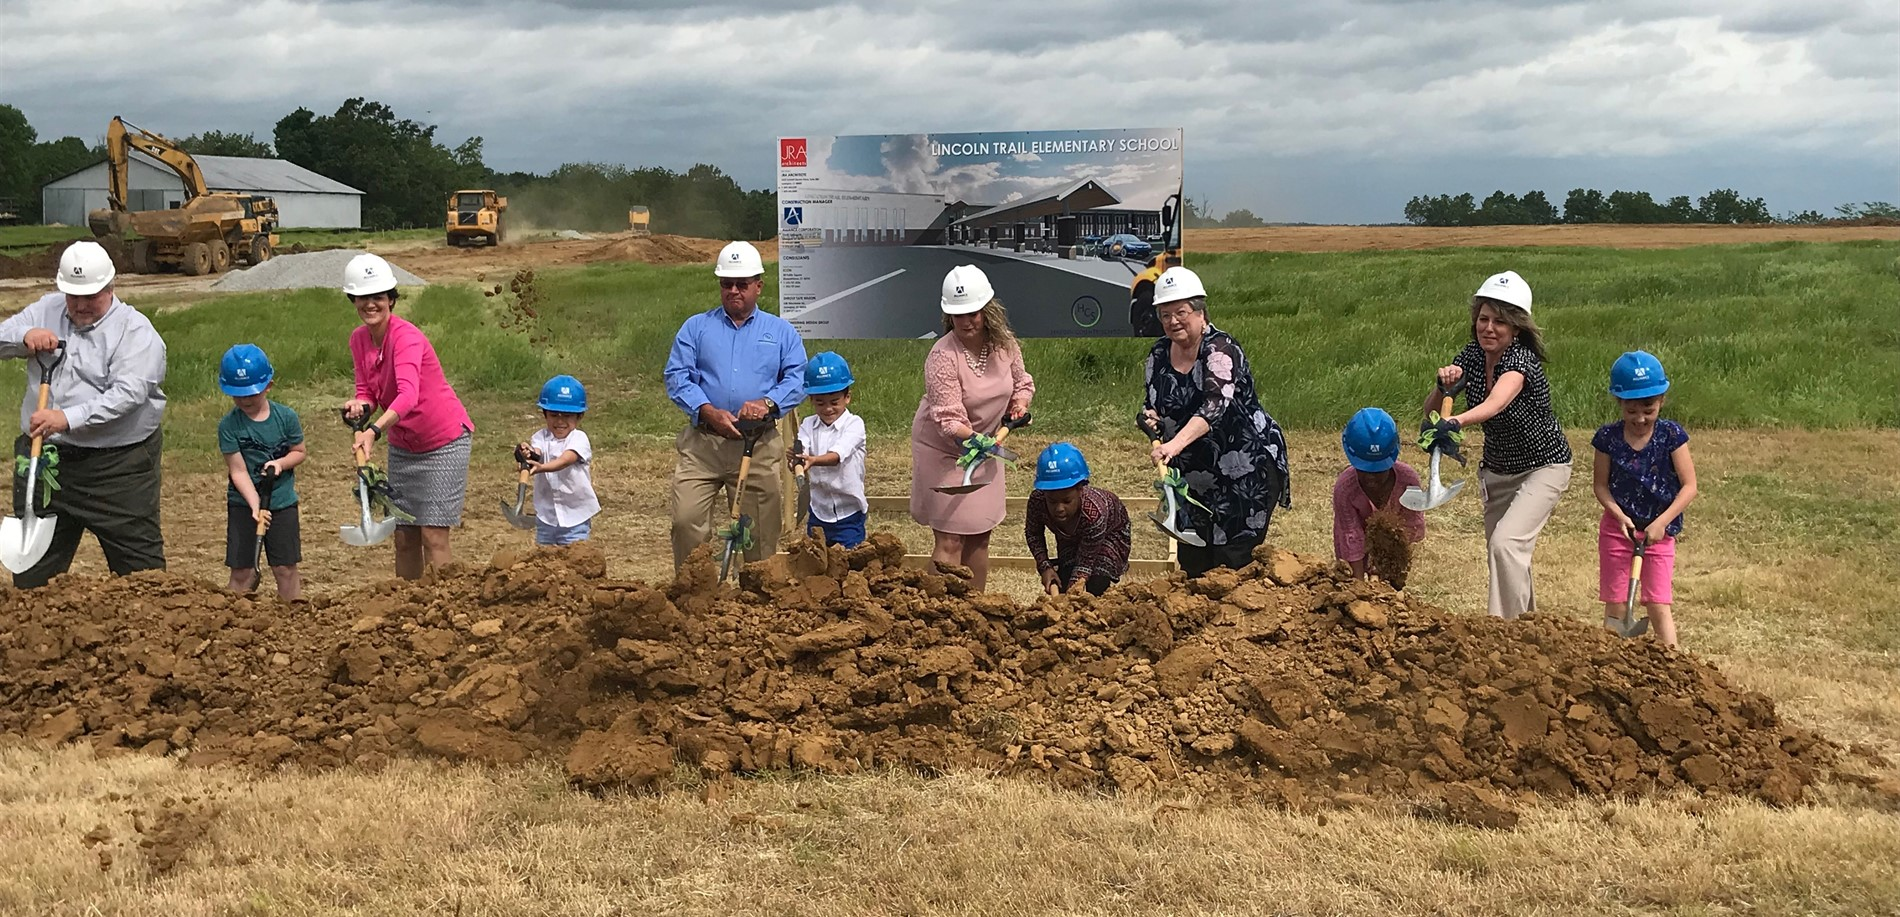 Lincoln Trail Elementary - New School Groundbreaking